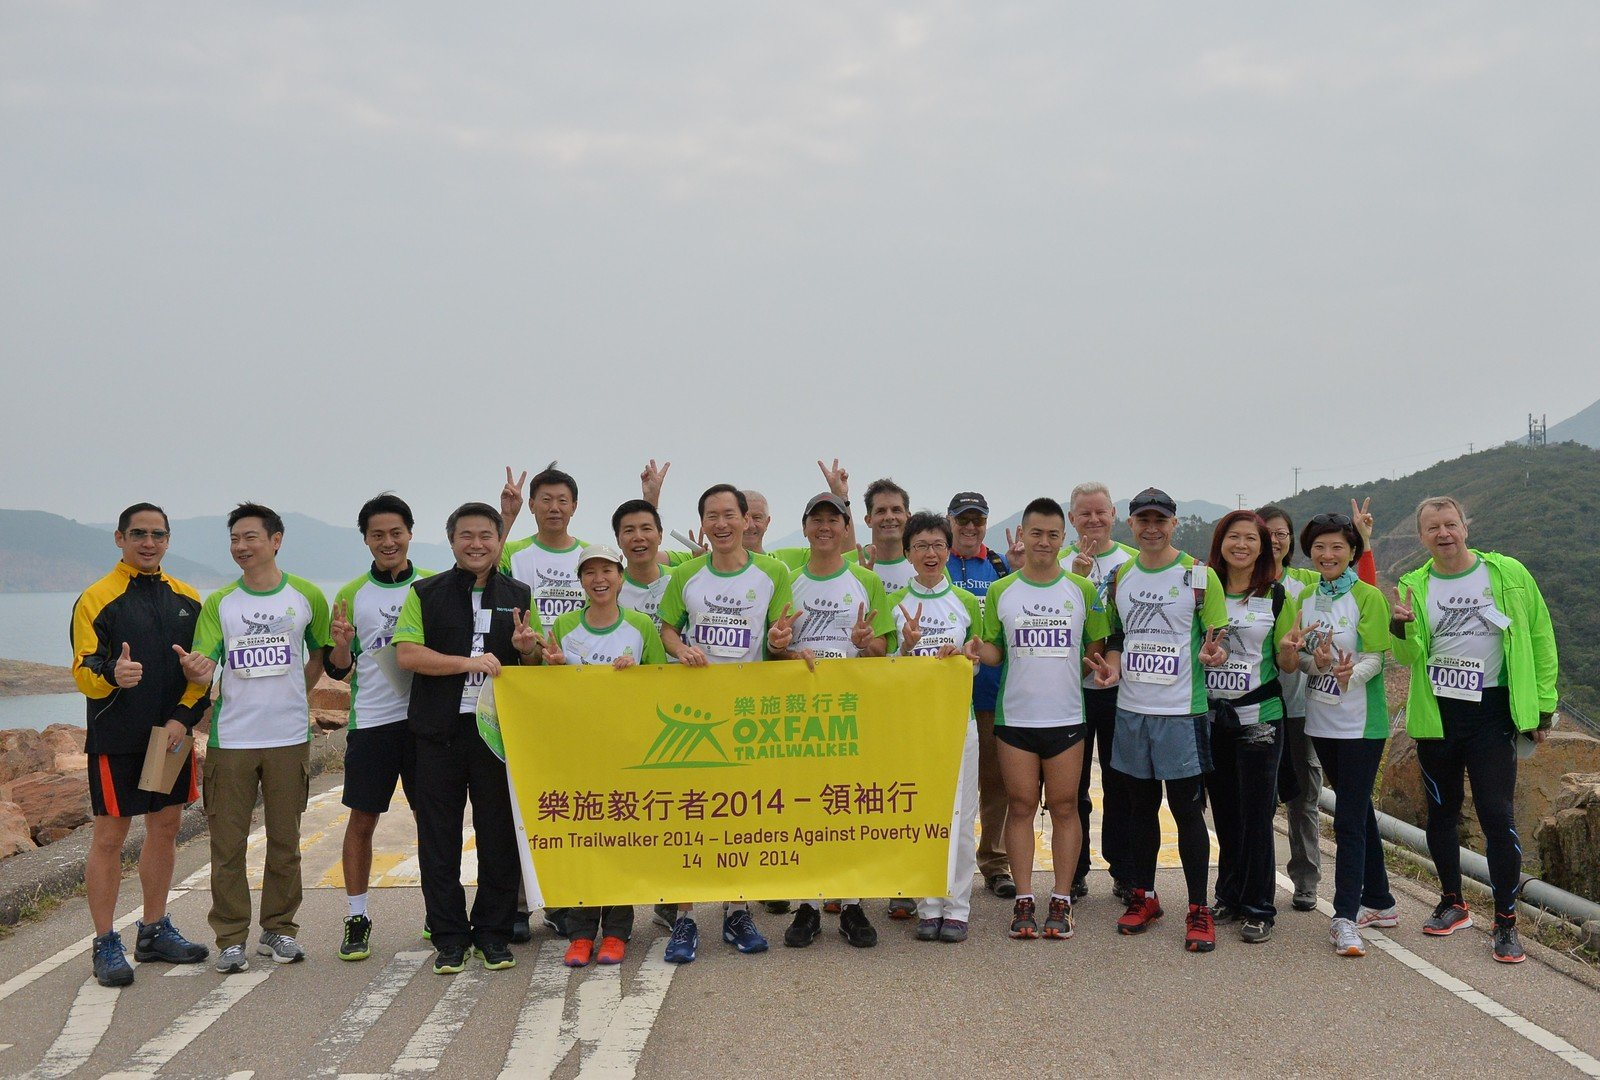 More than 20 business leaders, including Zhu Qi, Executive Director and CEO of Wing Lung Bank (fifth from the left), Lau Ming Wai, Chairman & CEO of Chinese Estates Holdings Limited (fifth from the right), and Shirley Yuen, CEO of The Hong Kong General Chamber of Commerce (sixth from the left) join the all-new 'Oxfam Trailwalker 2014 – Leaders against Poverty Walk' on the first day of the event.